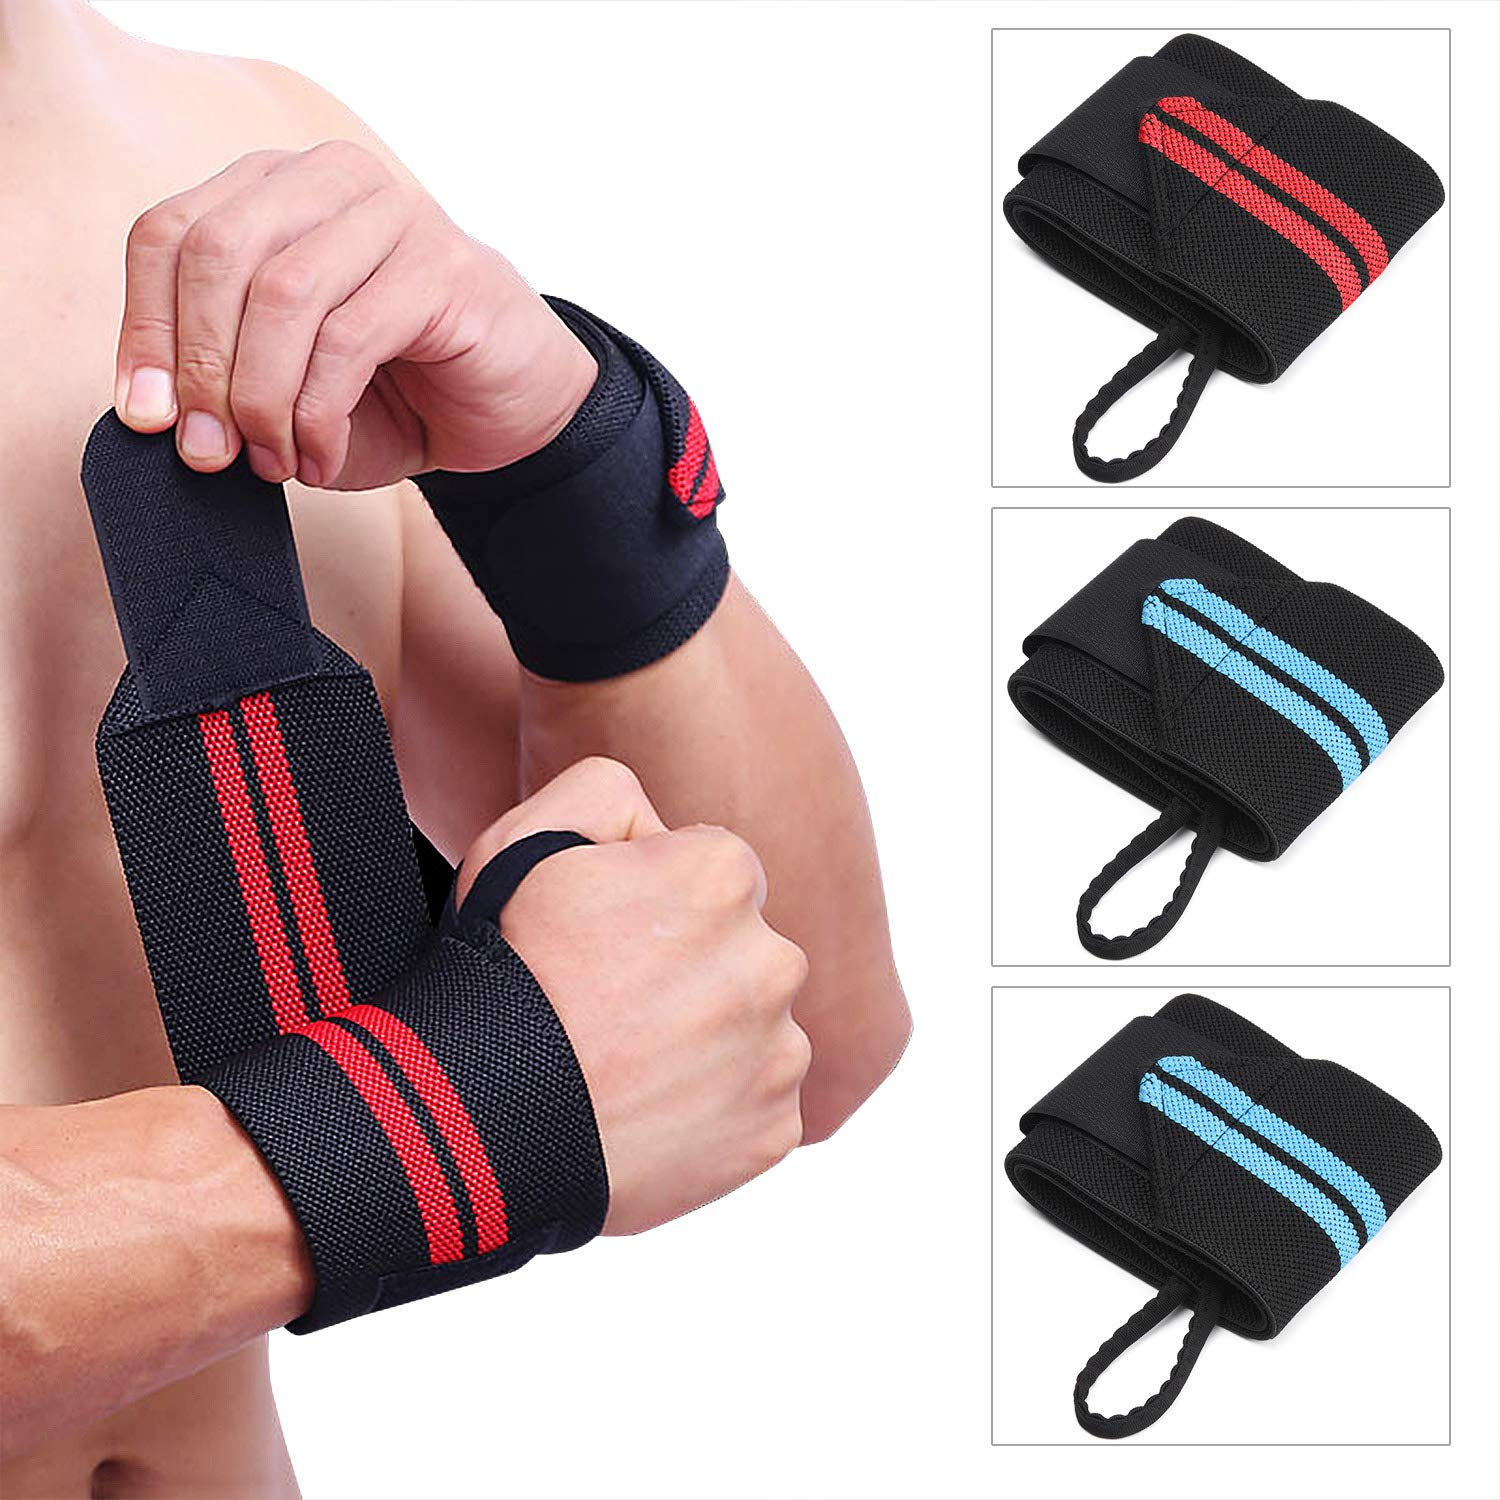 TOBWOLF Lifting Wrist Wraps, Professional 18'' Men Weightlifting Strap with Thumb Loop, Adjustable Carpal Tunnel Wrist Support Braces for Gym, Workout, Powerlifting 2 Pairs